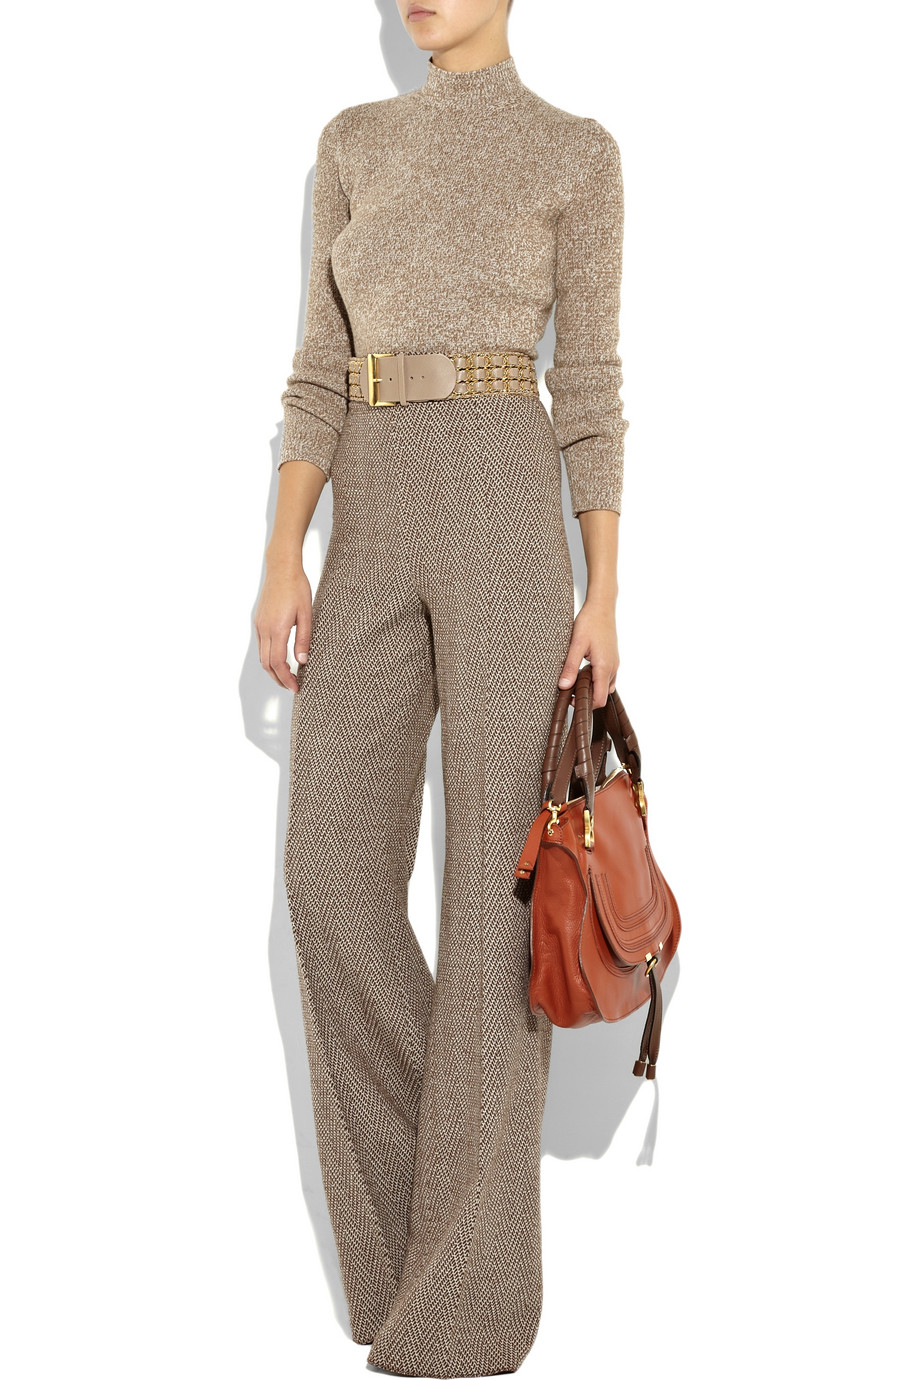 Chlo¨¦ Marcie Leather Bag in Brown (whisky)   Lyst